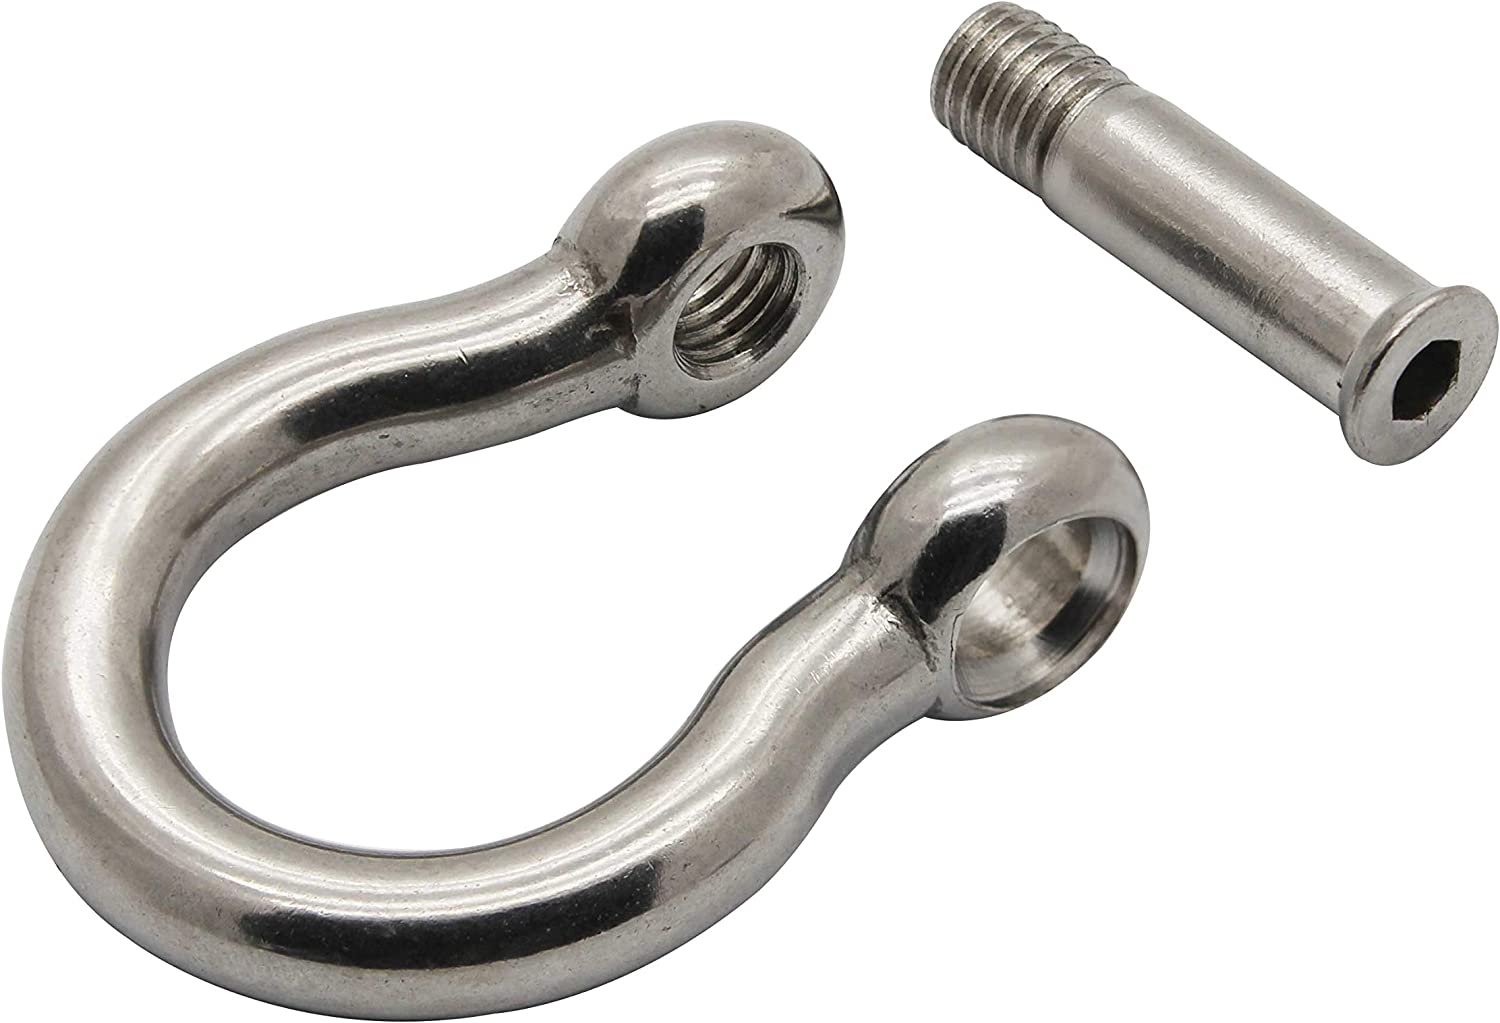 2-Pack Extreme Max 3006.8405.2 BoatTector Stainless Steel Bow Shackle with No-Snag Pin 1//4